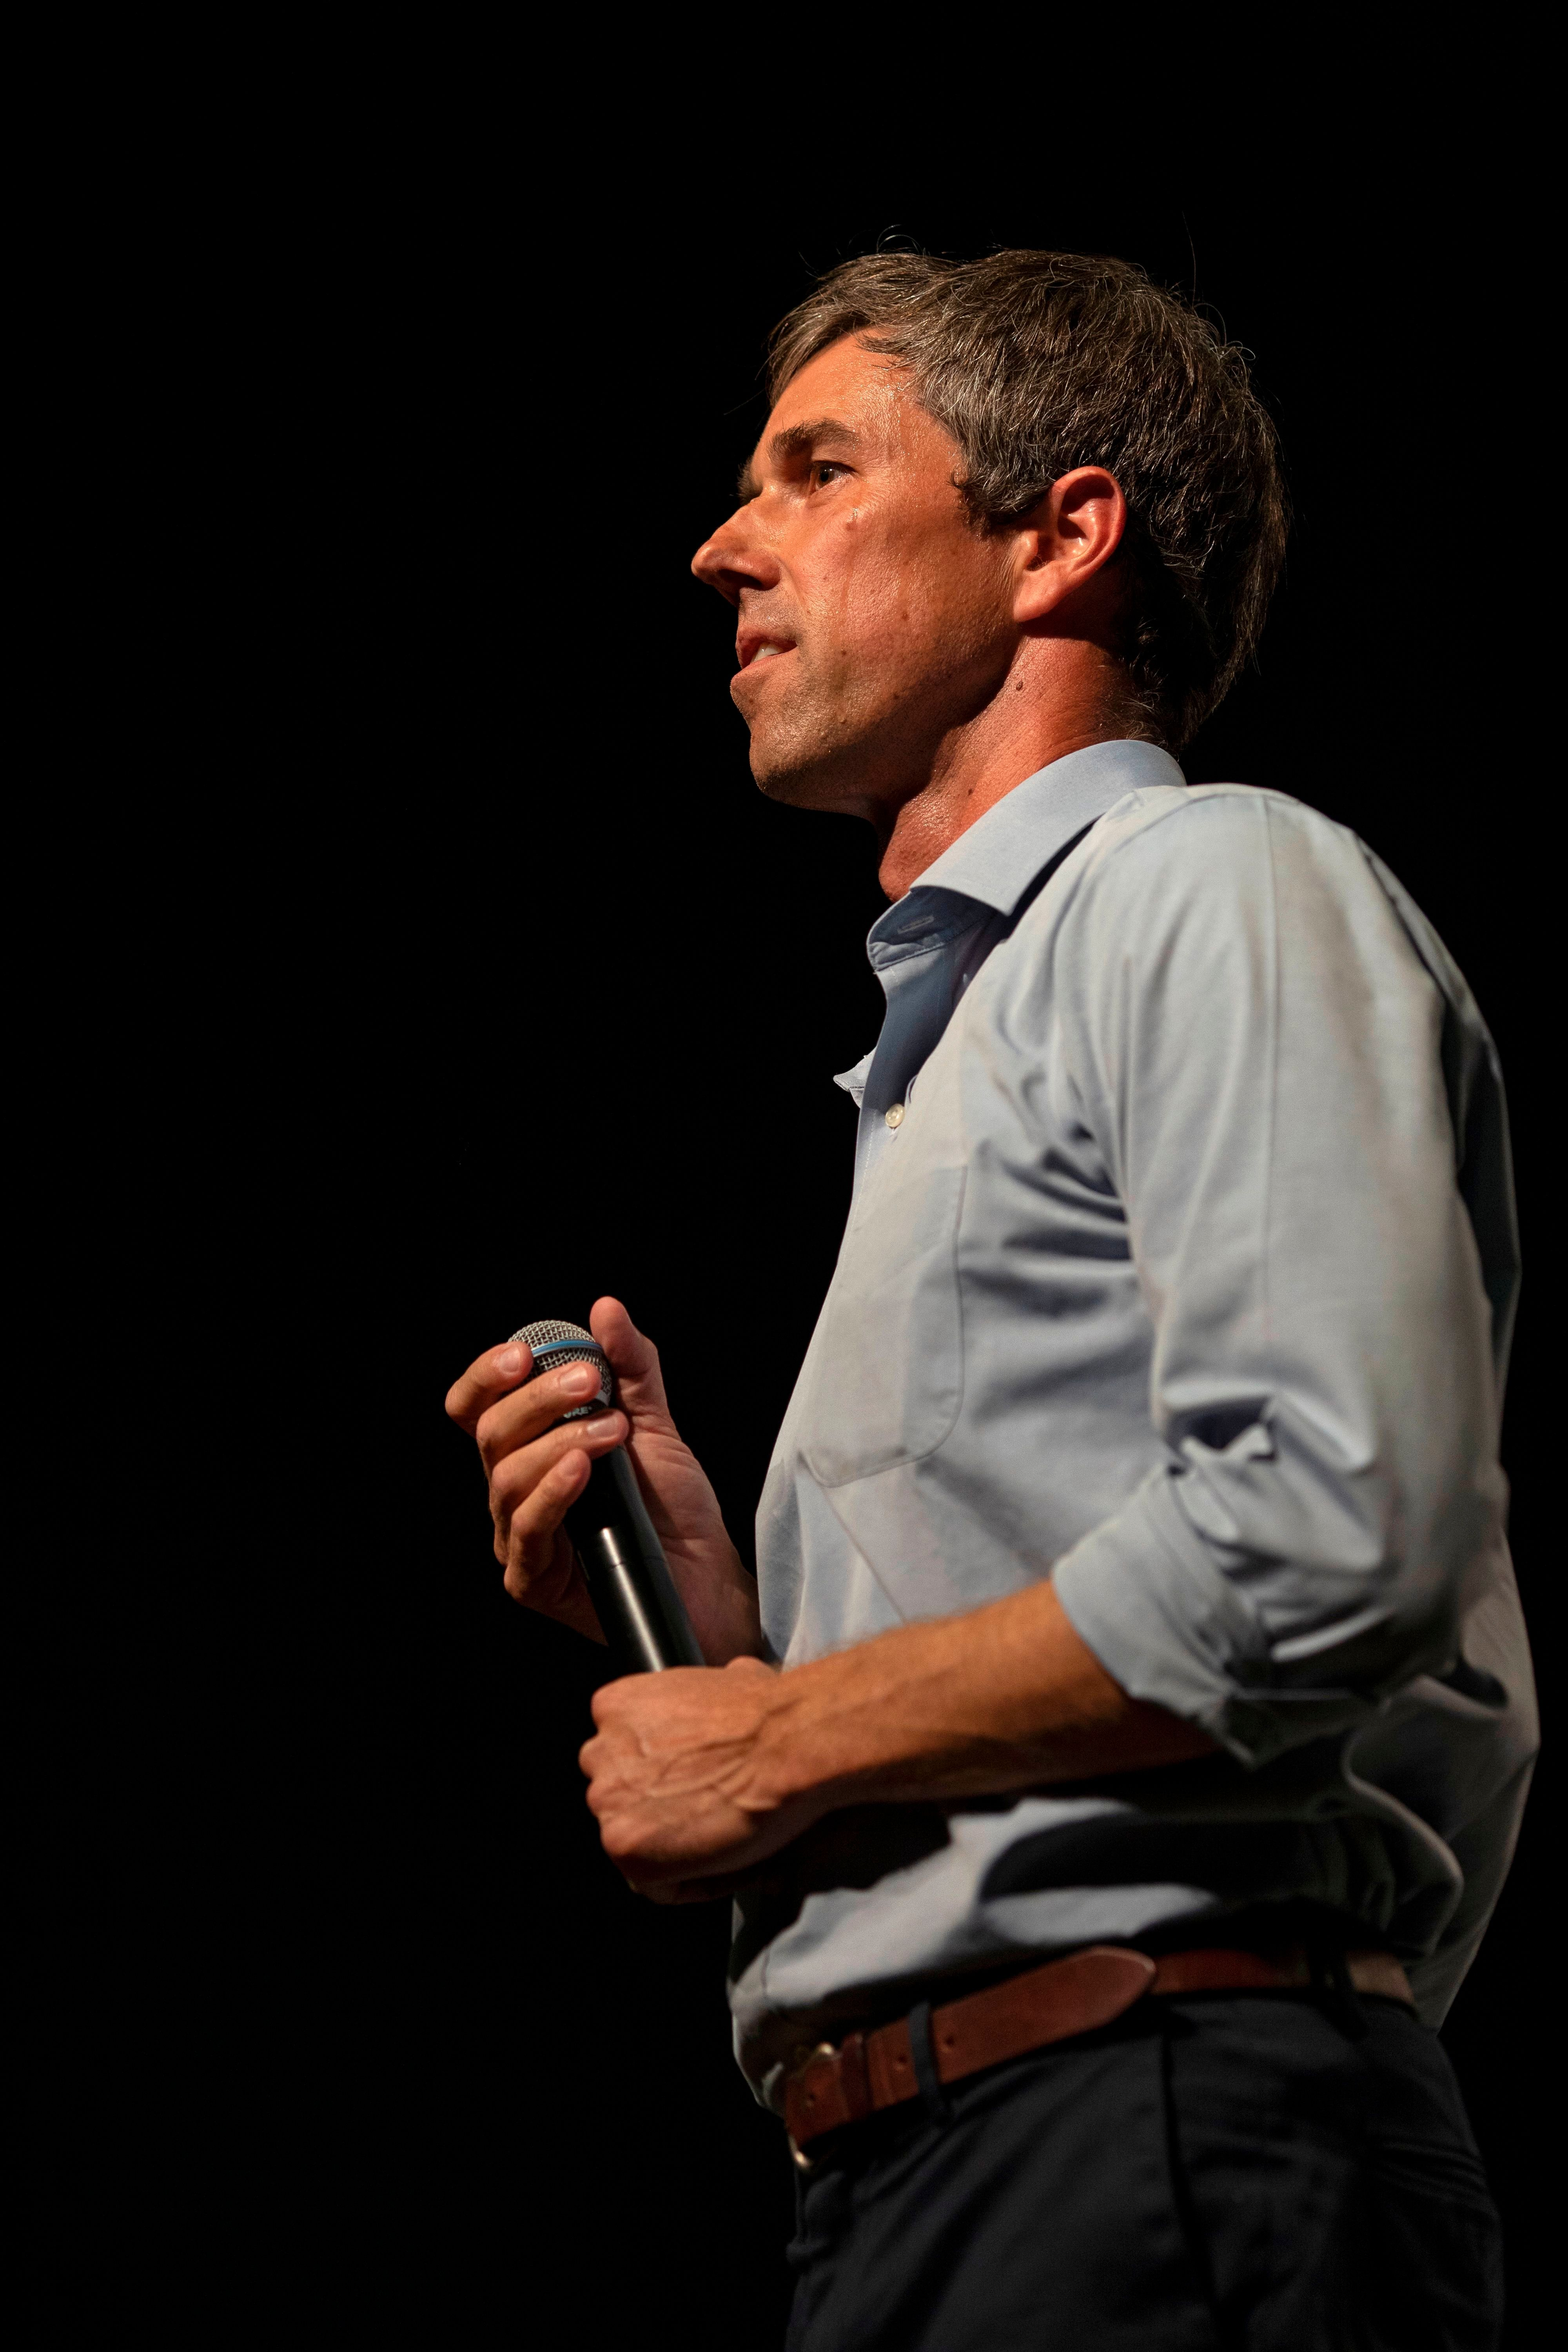 Beto O'Rourke Condemns Use Of Tear Gas On Asylum Seekers At